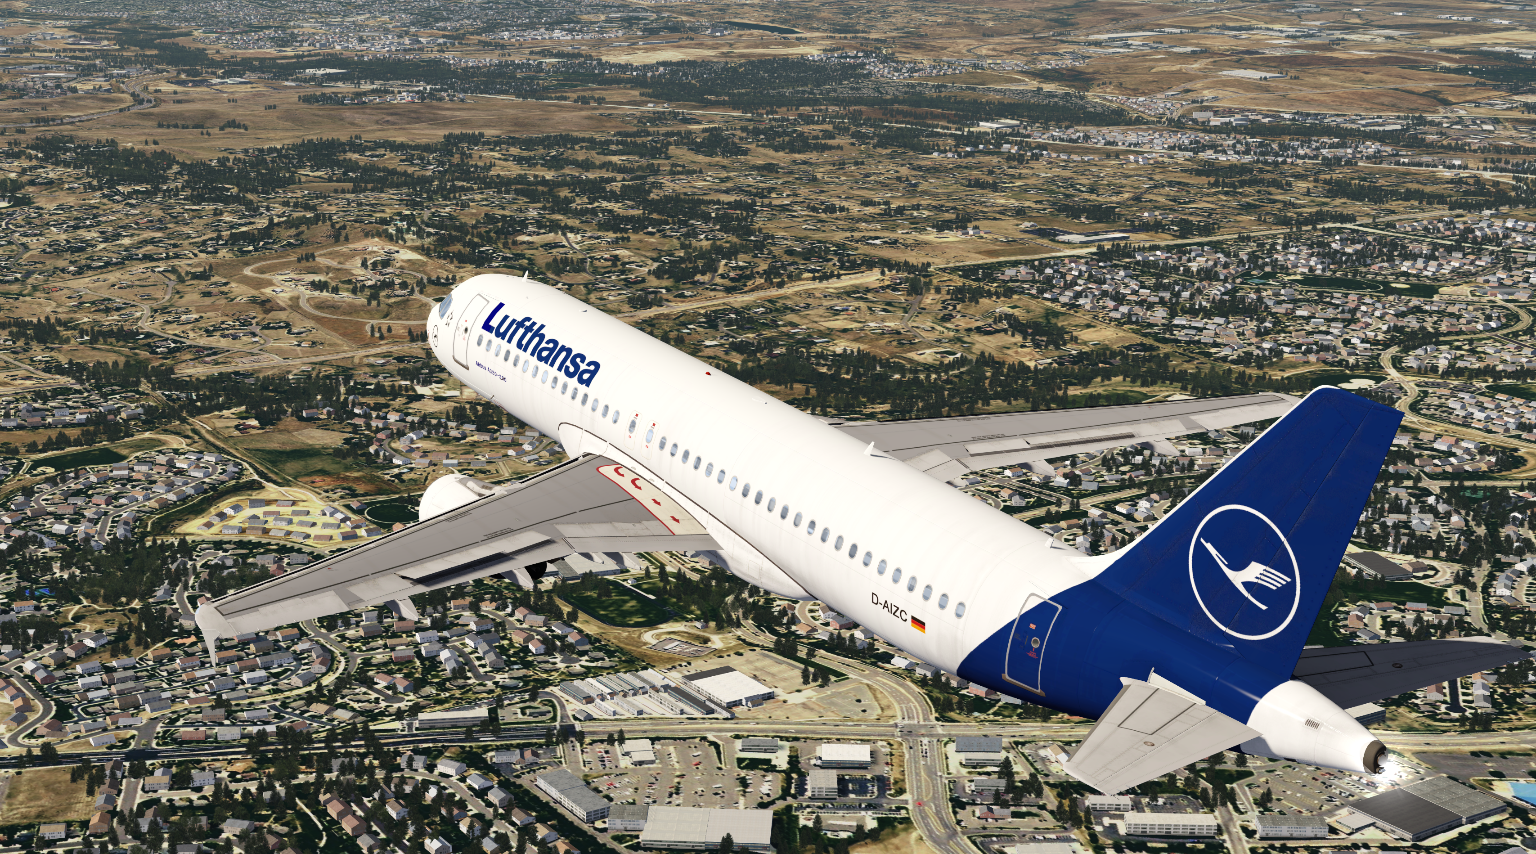 Airbus A320 on its last test flight performing Low Pass over Denver airport!